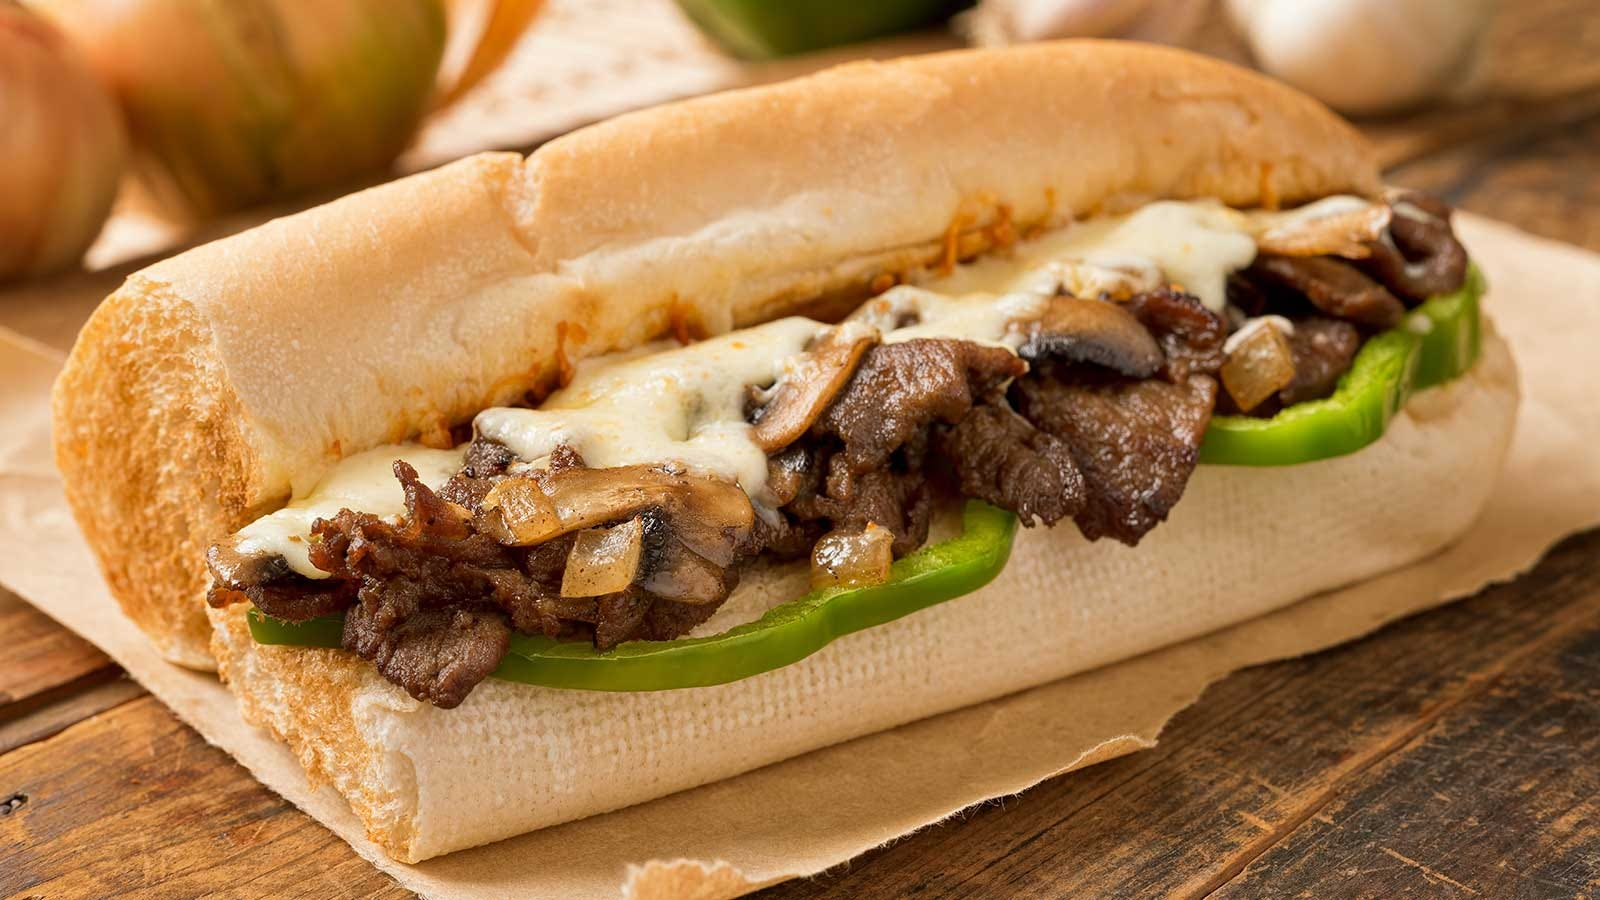 A steak submarine sandwich with melted cheese, onions, and green peppers.